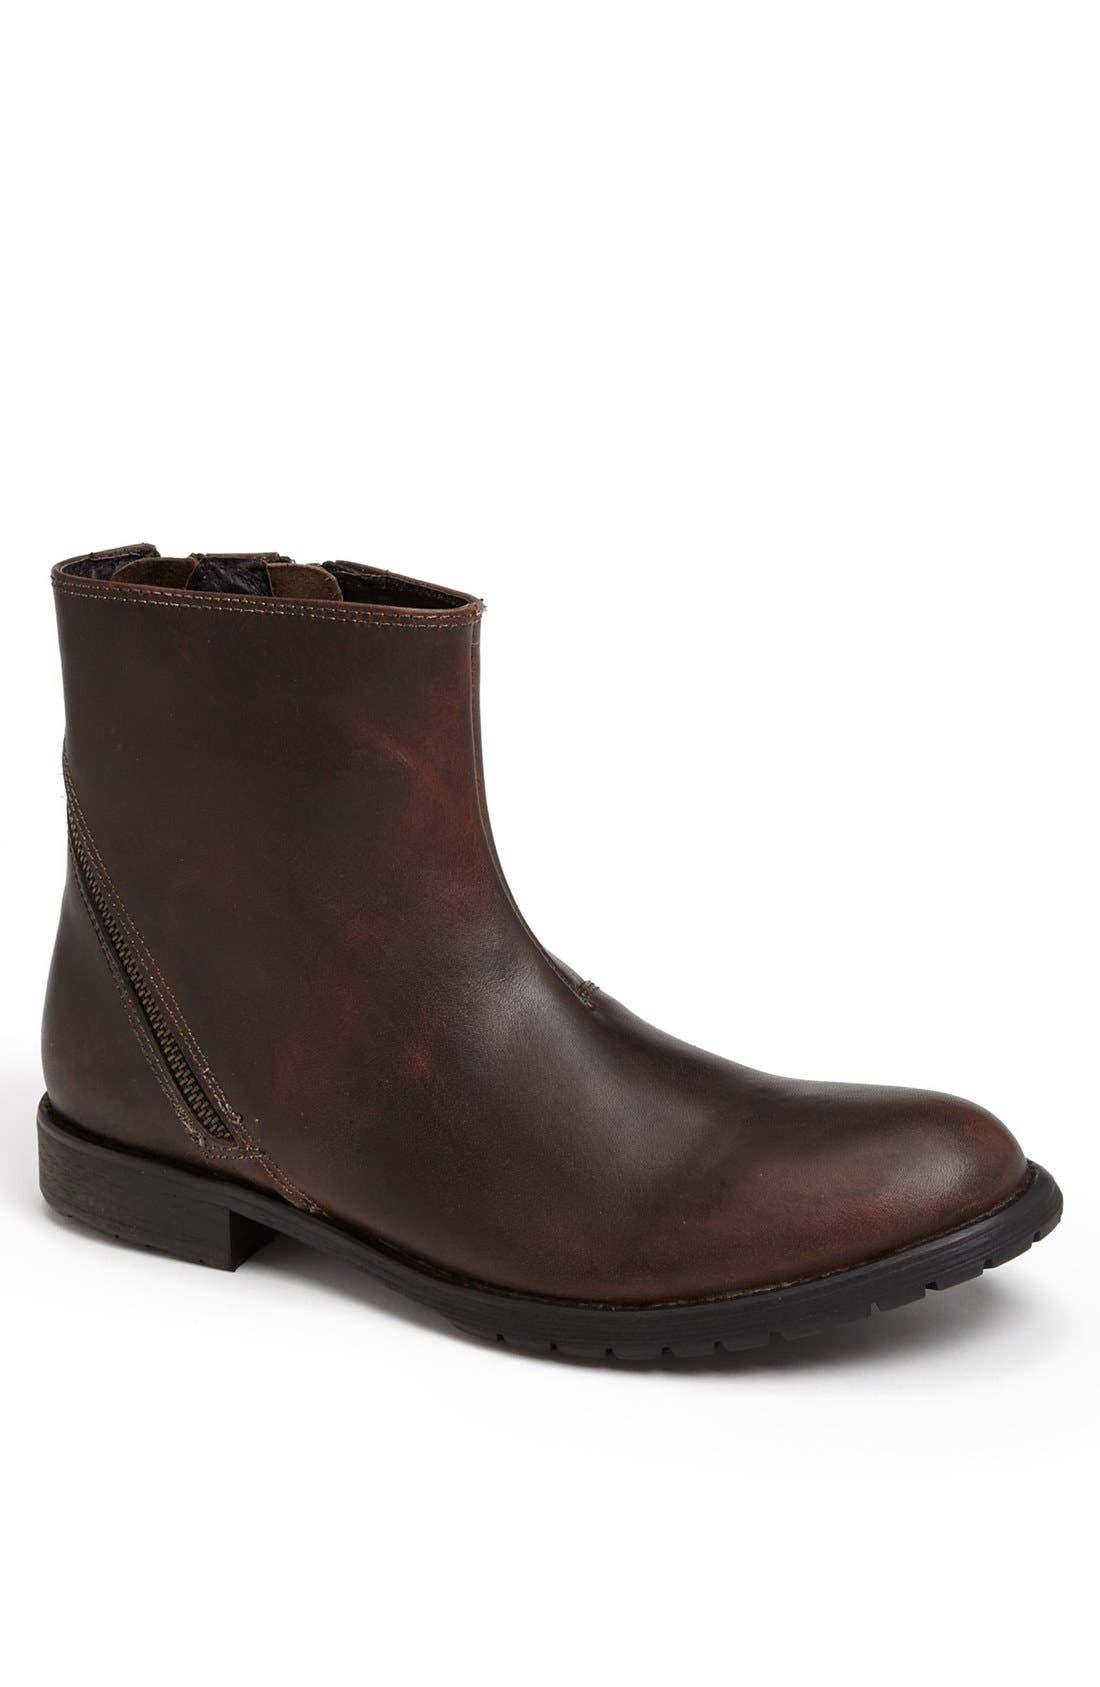 Alternate Image 1 Selected - Bed Stu 'Harrison' Zip Boot (Men)